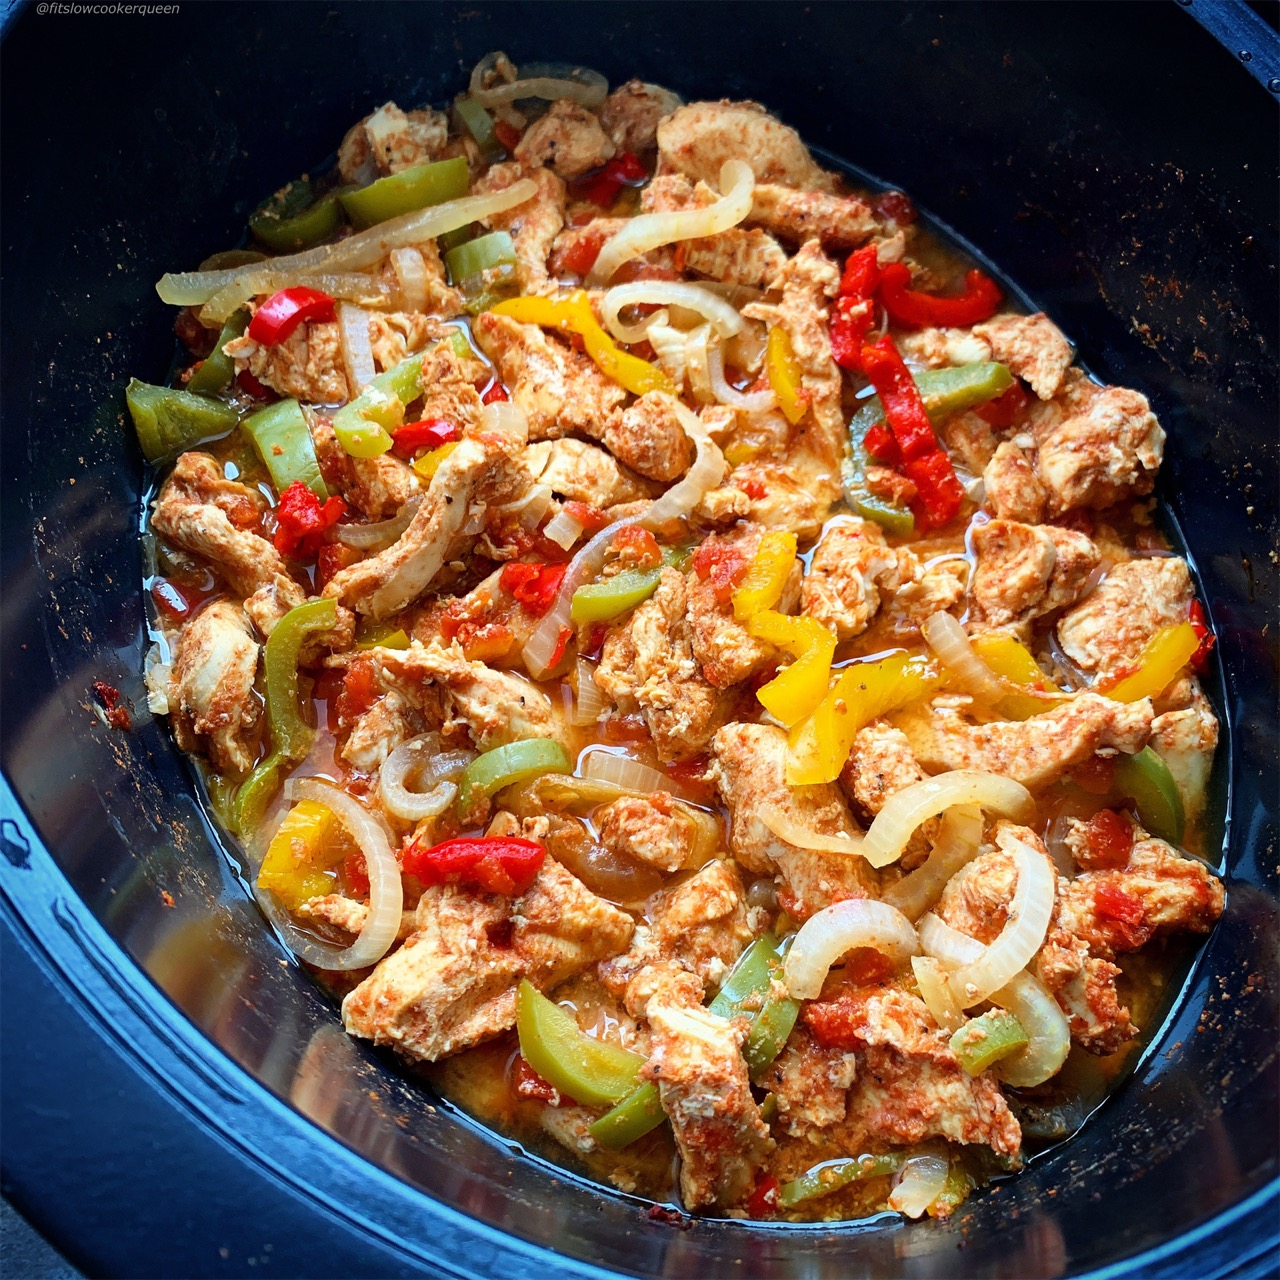 There are only 5 ingredients in this low-carb, paleo, and whole30 chicken fajitas recipe. Make these fajitas in your slow cooker or pressure cooker.